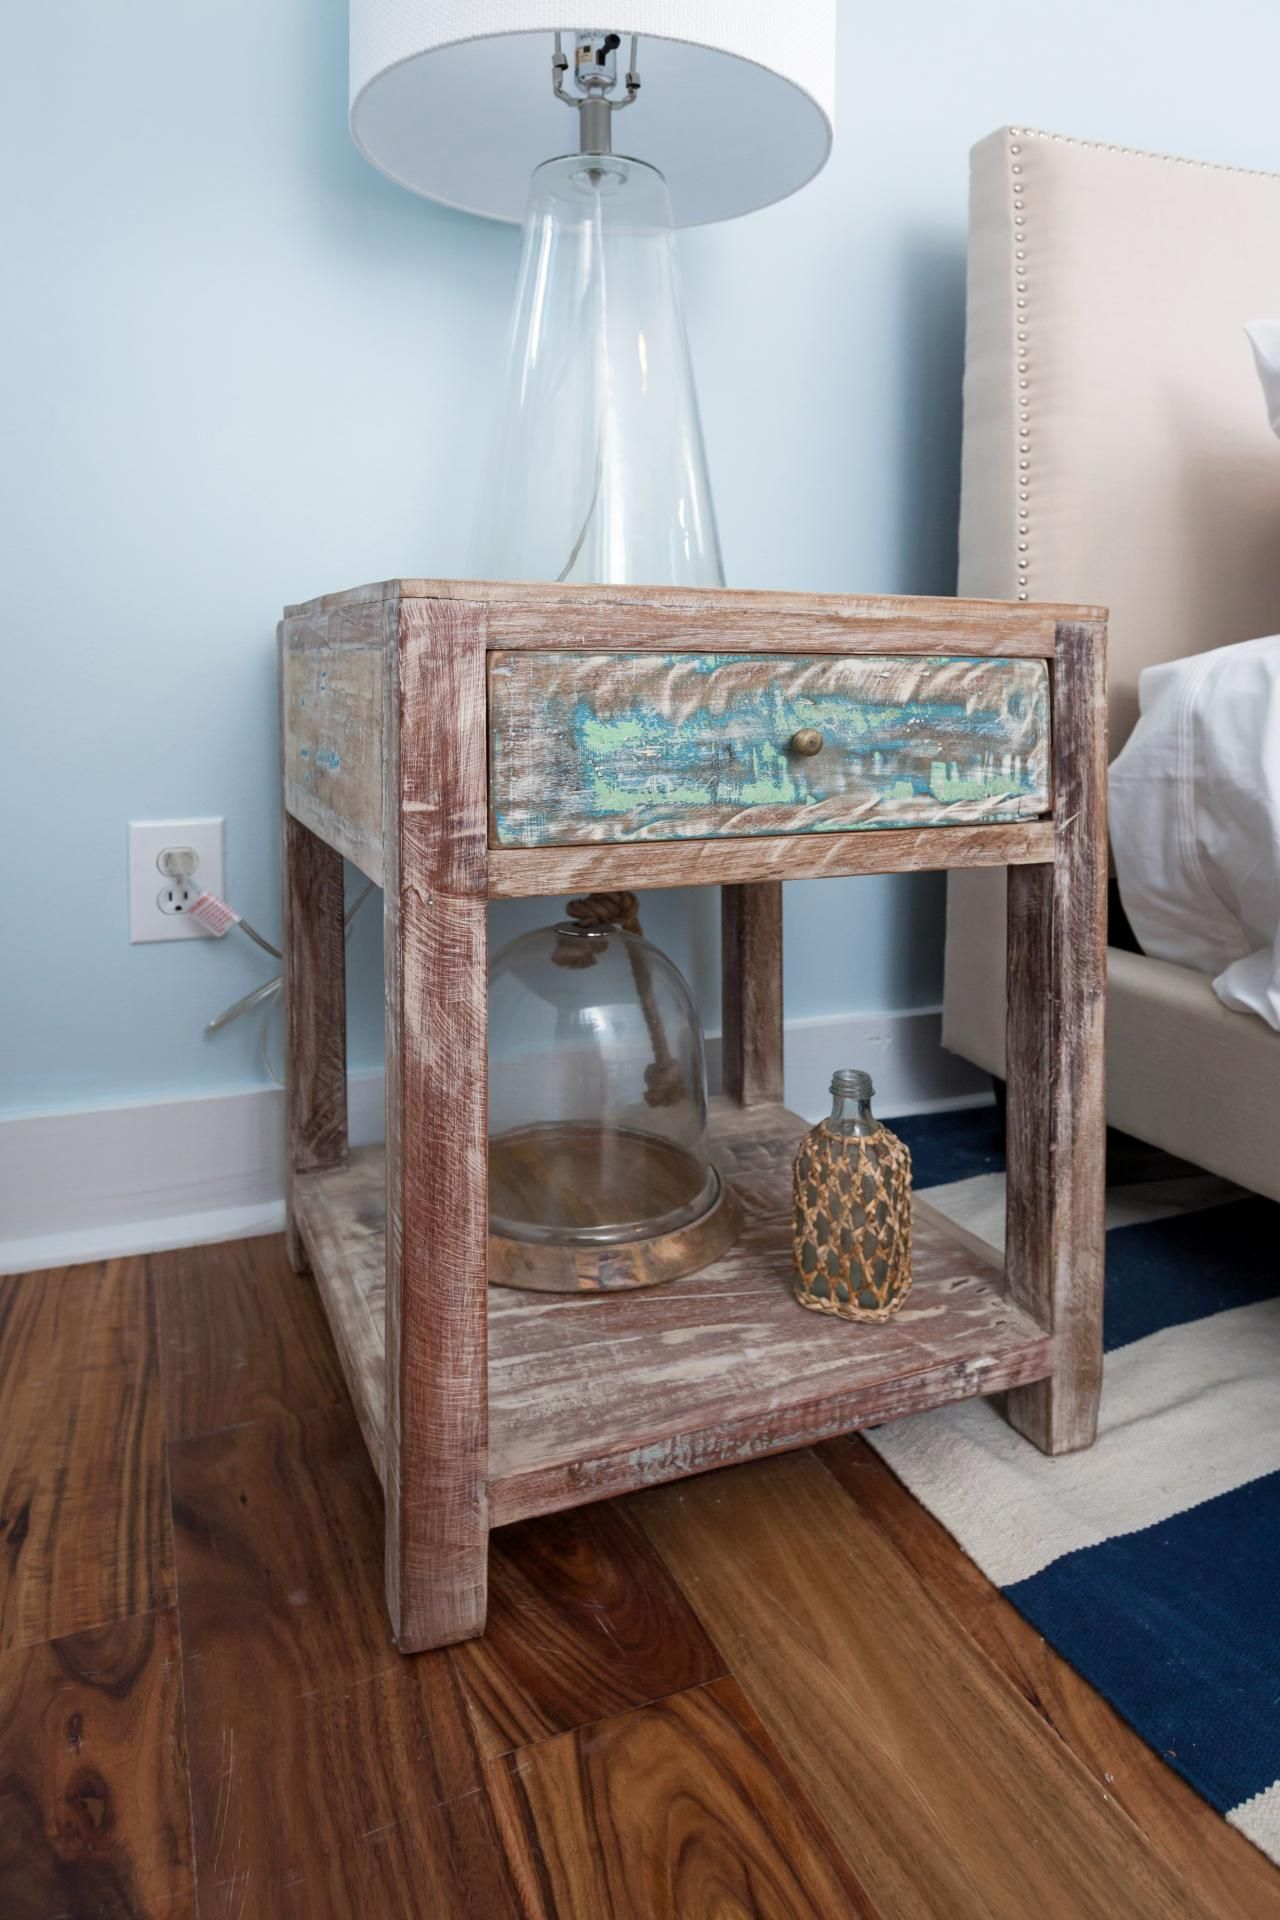 Master bedroom nightstand decor  As seen on Beach Flip decorations include a beach style nightstand